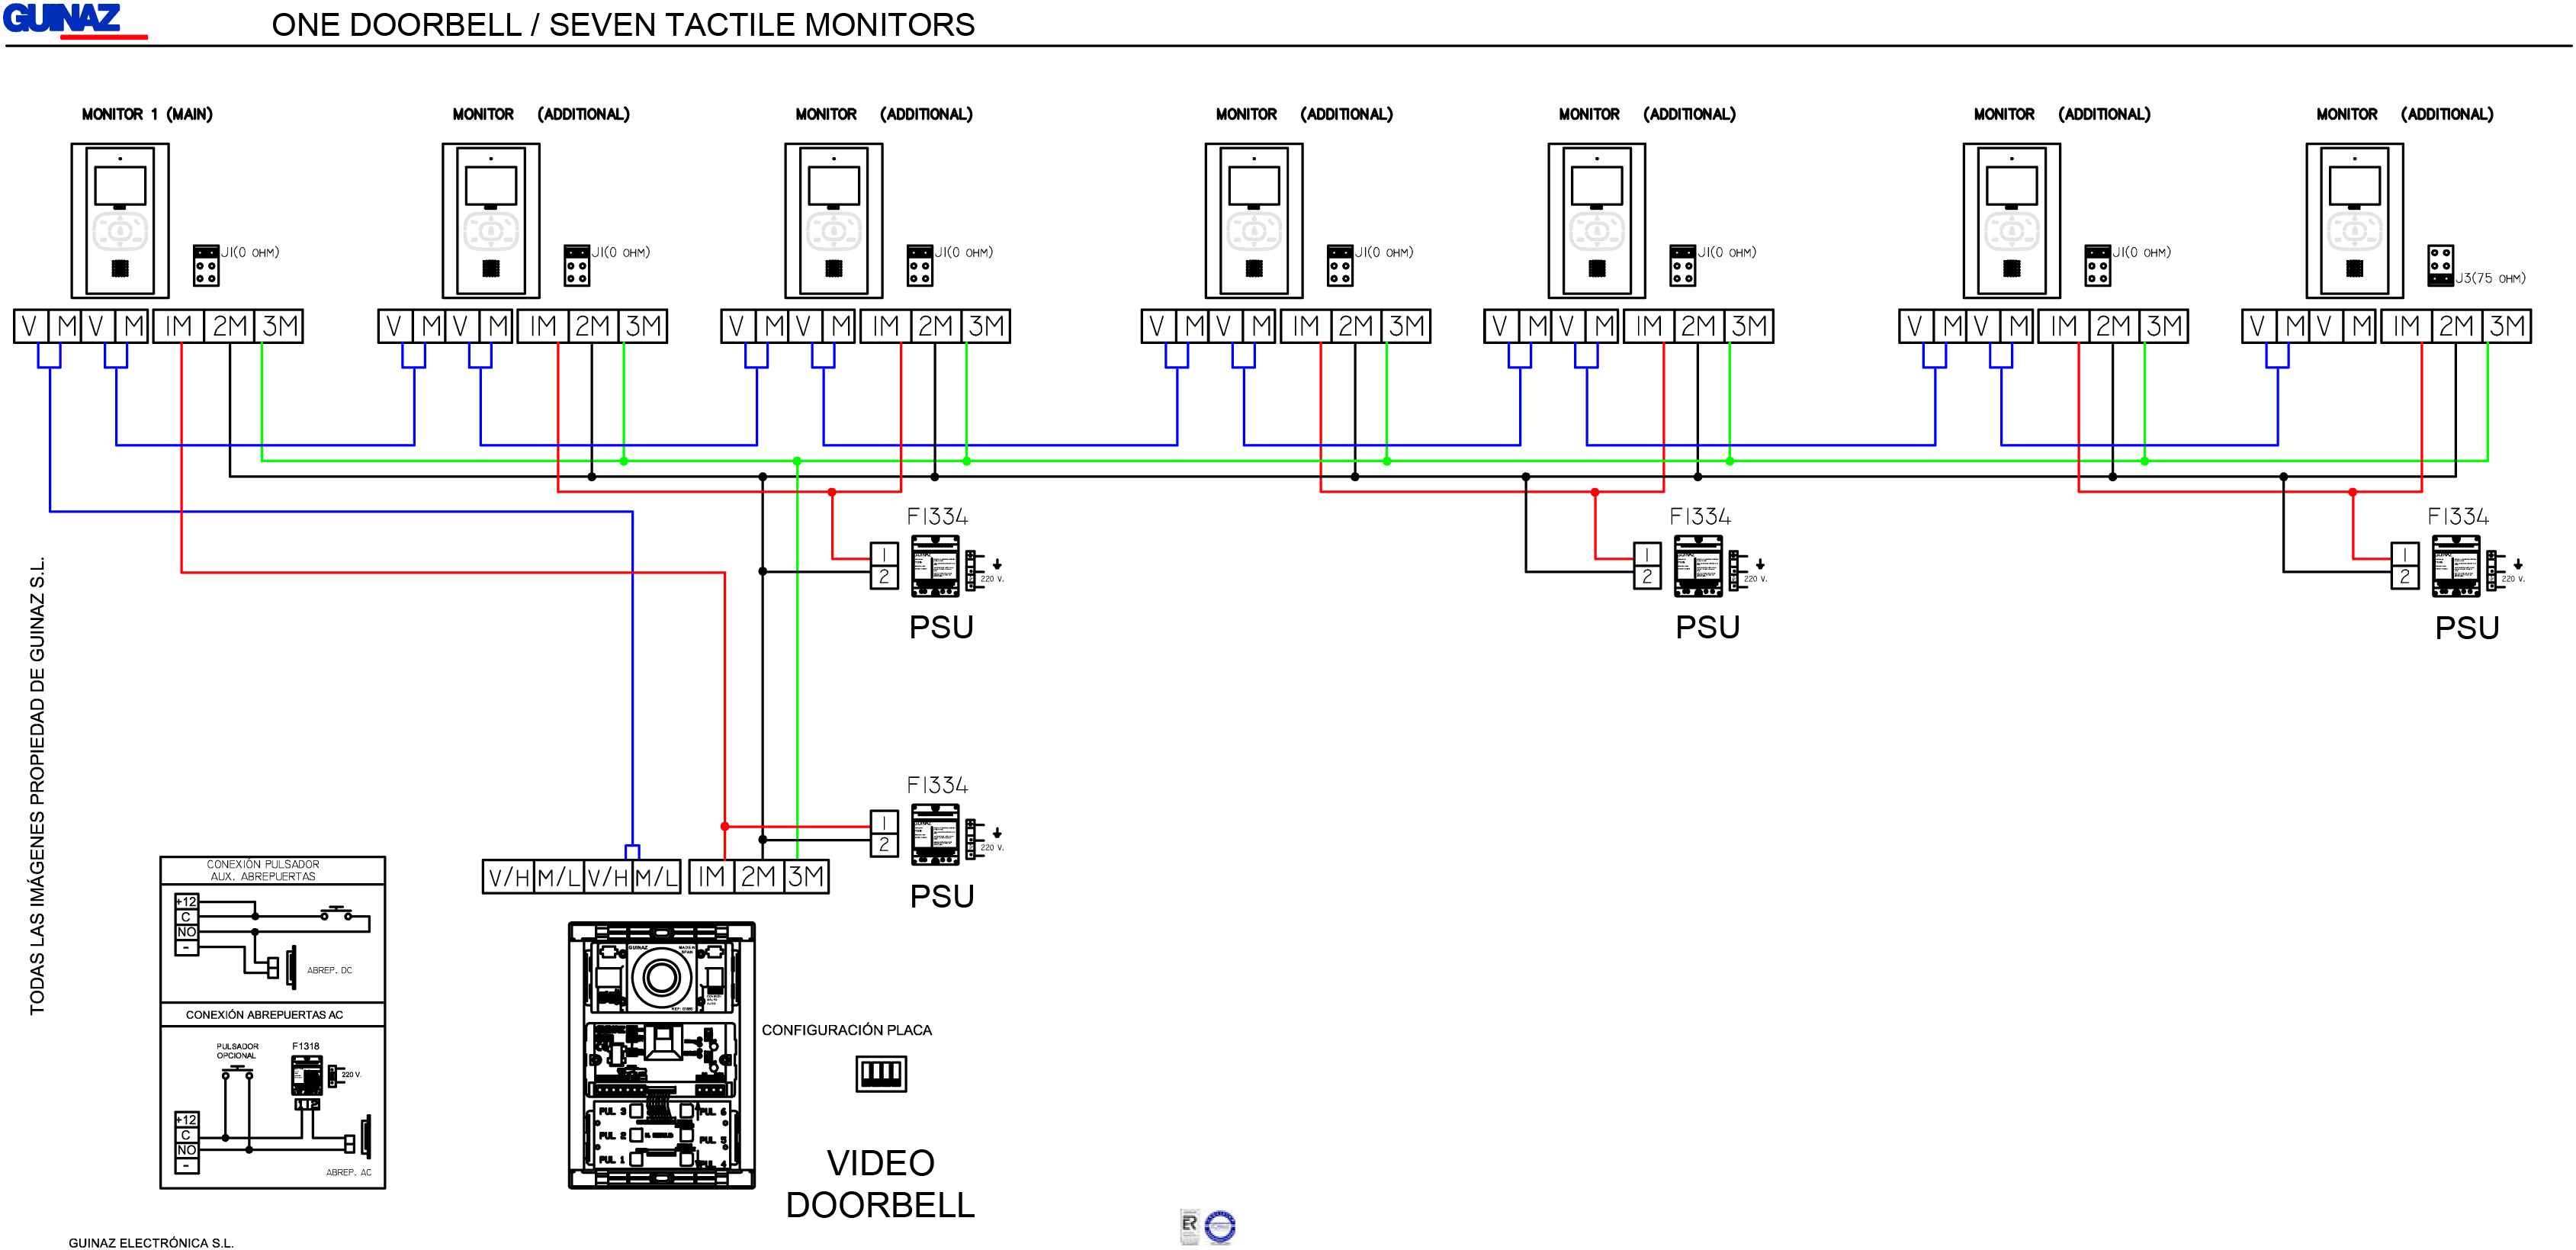 intelligent home online product details 7 monitors daisy chain diagram